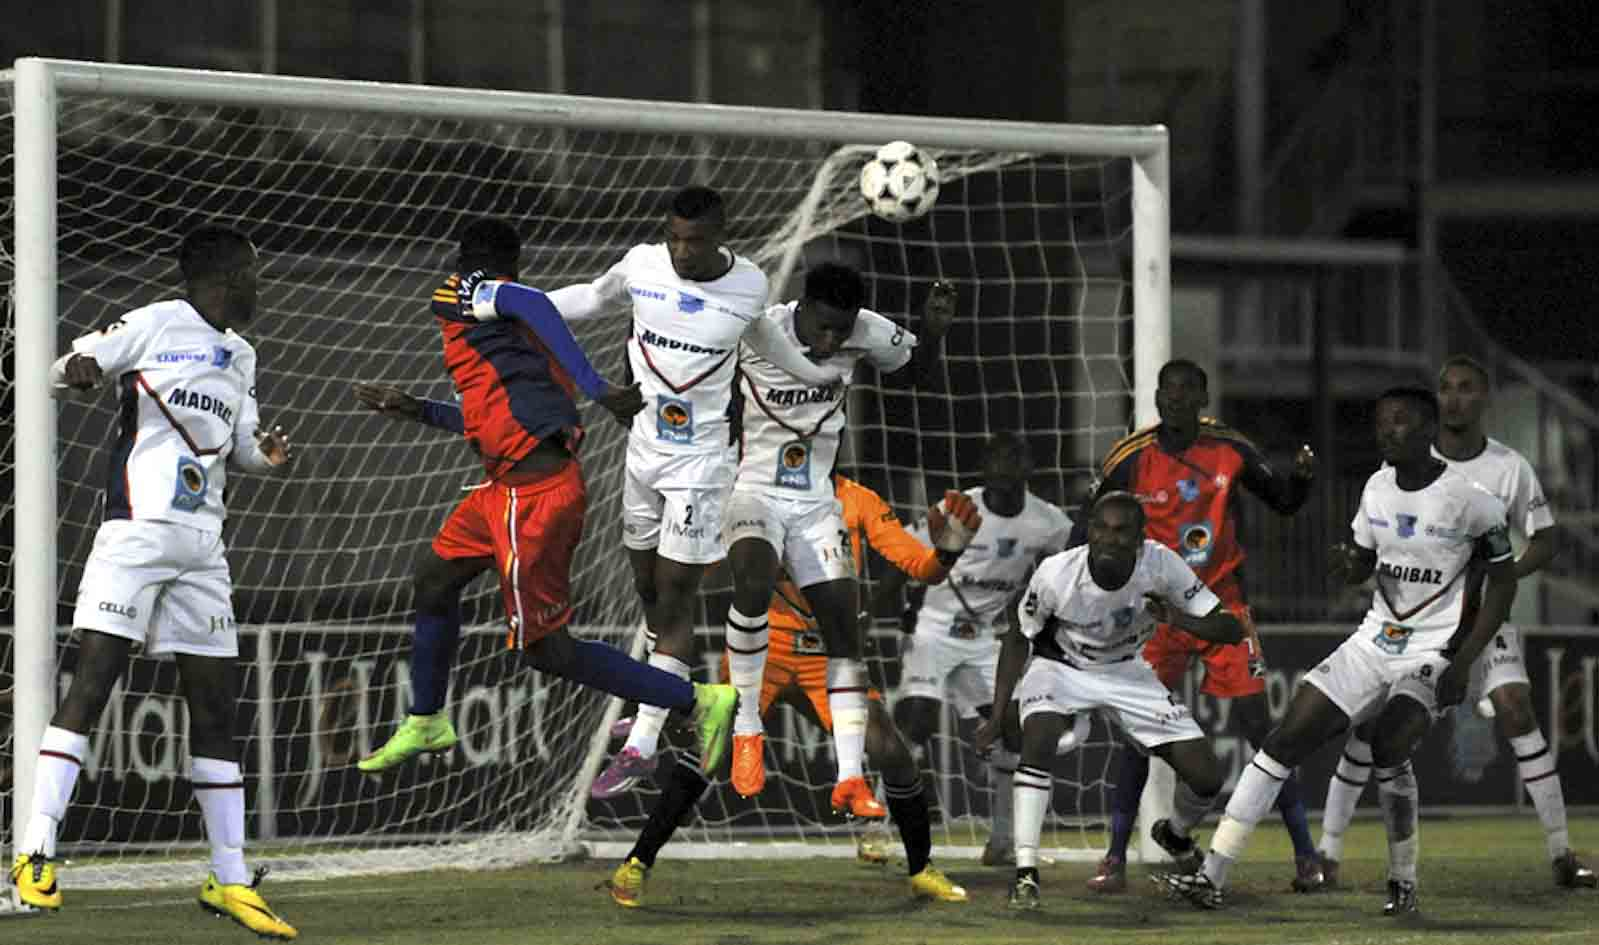 The Madibaz have vowed to continue the fight in this year's Varsity Football competition after a narrow 1-0 defeat by TUT on Monday night. Photo: Catherine Kotze/Saspa